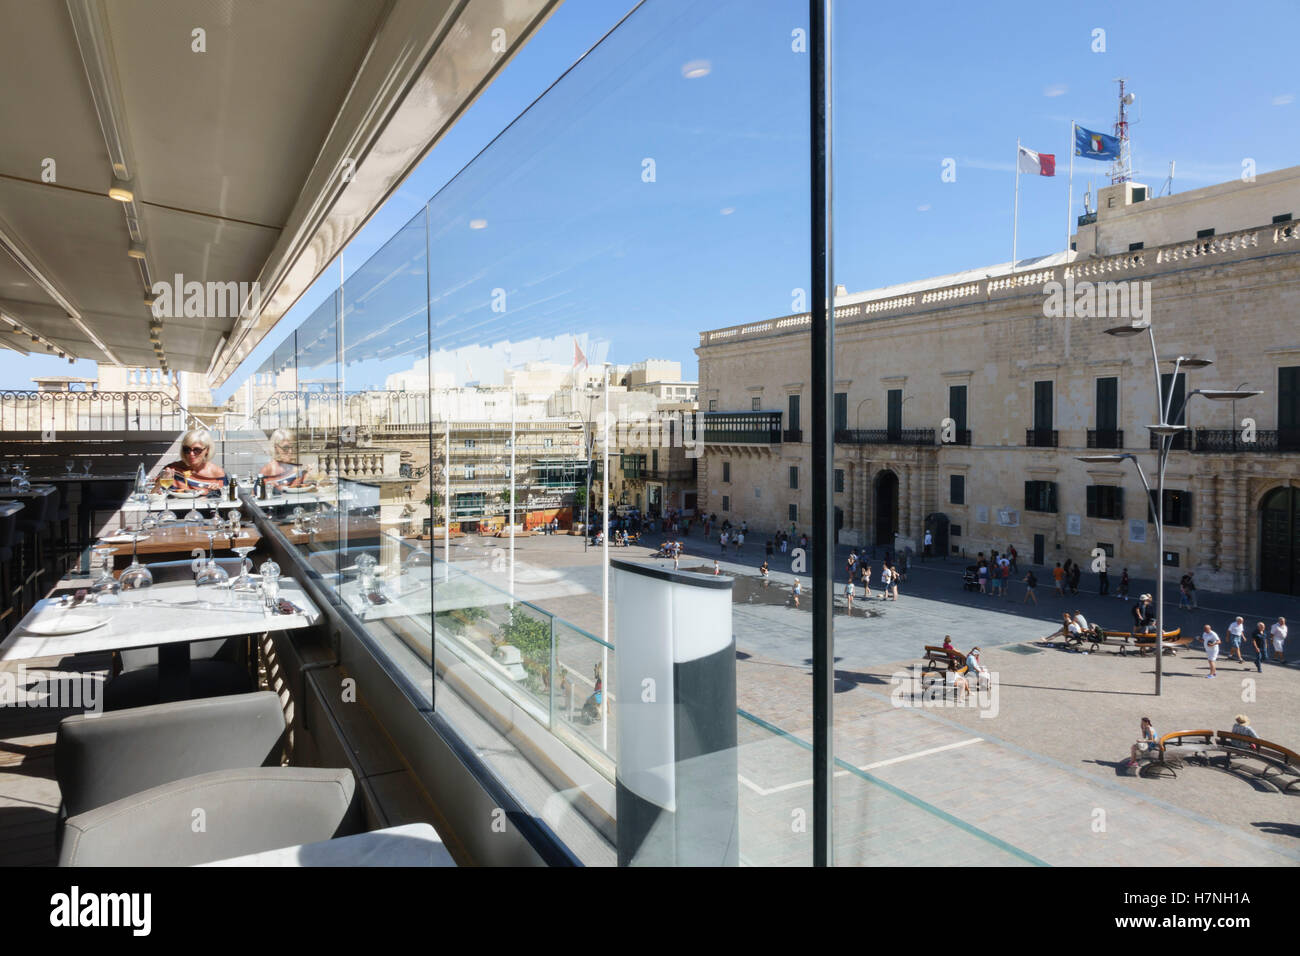 Valletta, walled capital city port of Malta. The City Lounge Steak House, upmarket central restaurant and bar with - Stock Image